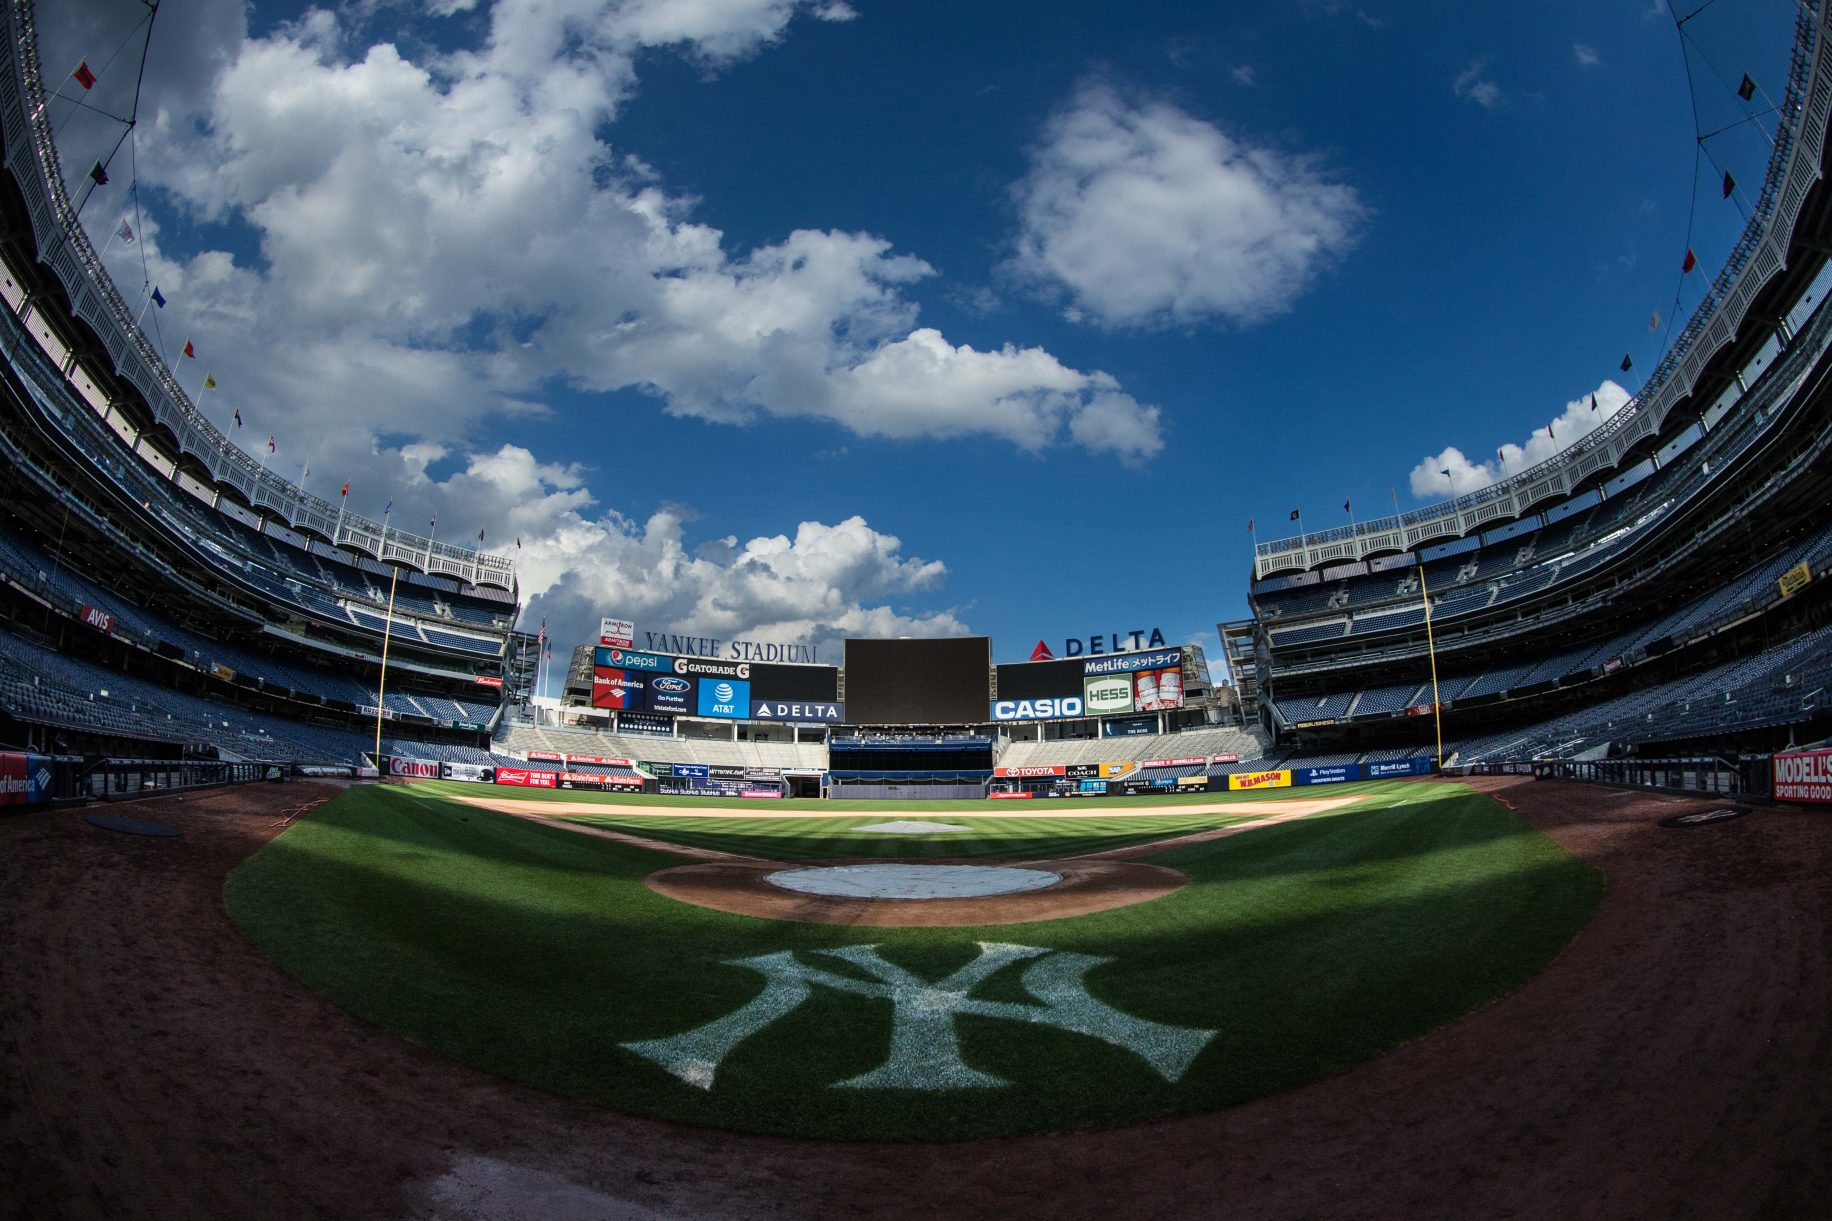 This Day In New York Yankees History: Longest Game In Team History